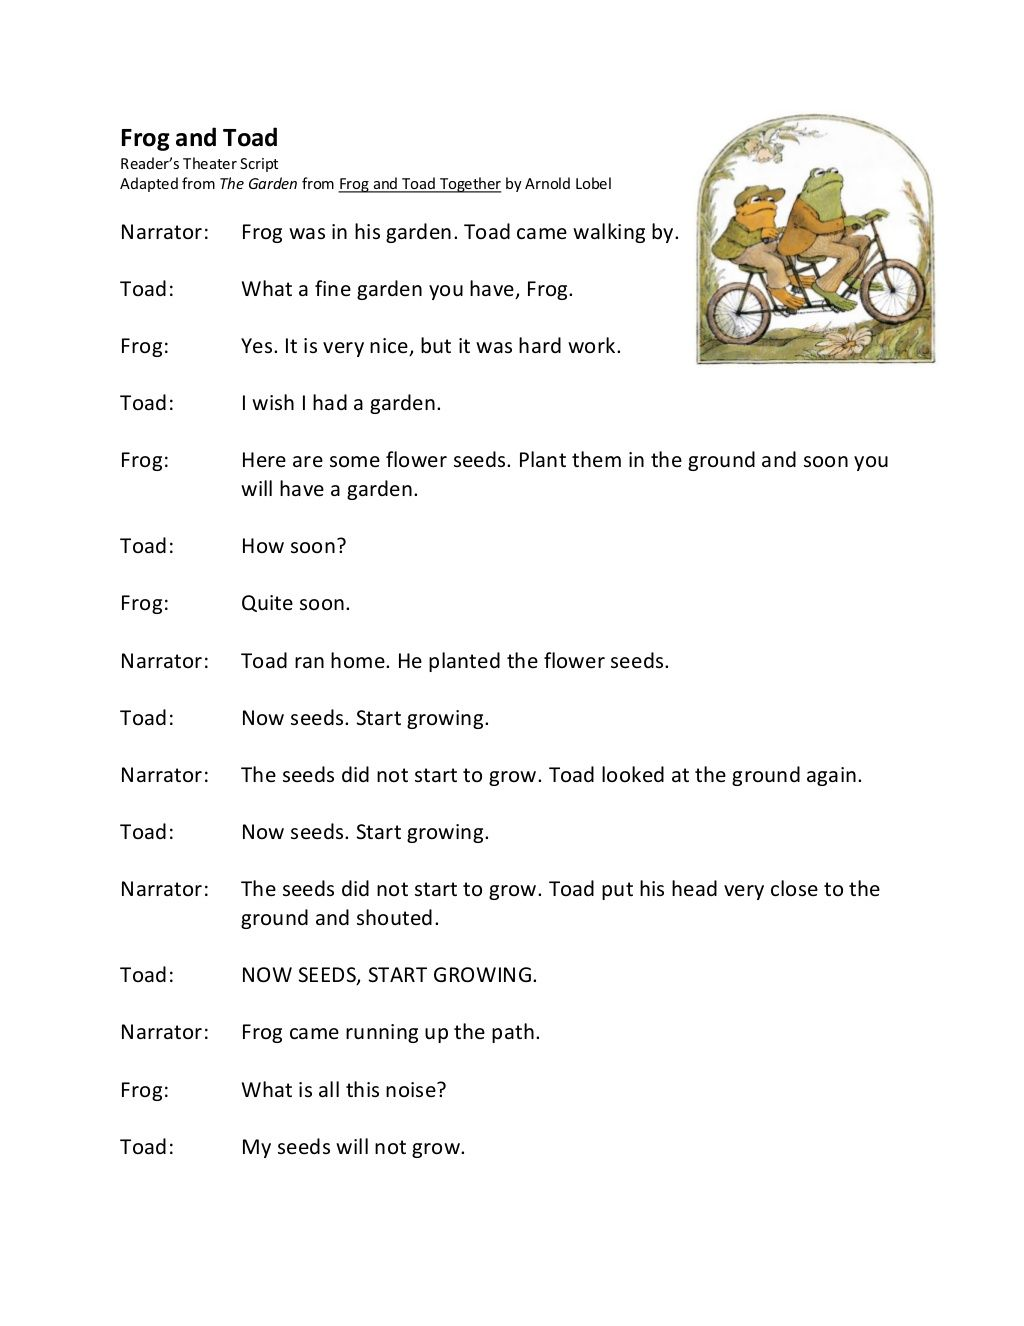 Frog And Toad Reader S Theater Script Adapted From The Garden From Frog And Toad Together By Arnold Lob Readers Theater Scripts Readers Theater Frog And Toad [ 1326 x 1024 Pixel ]